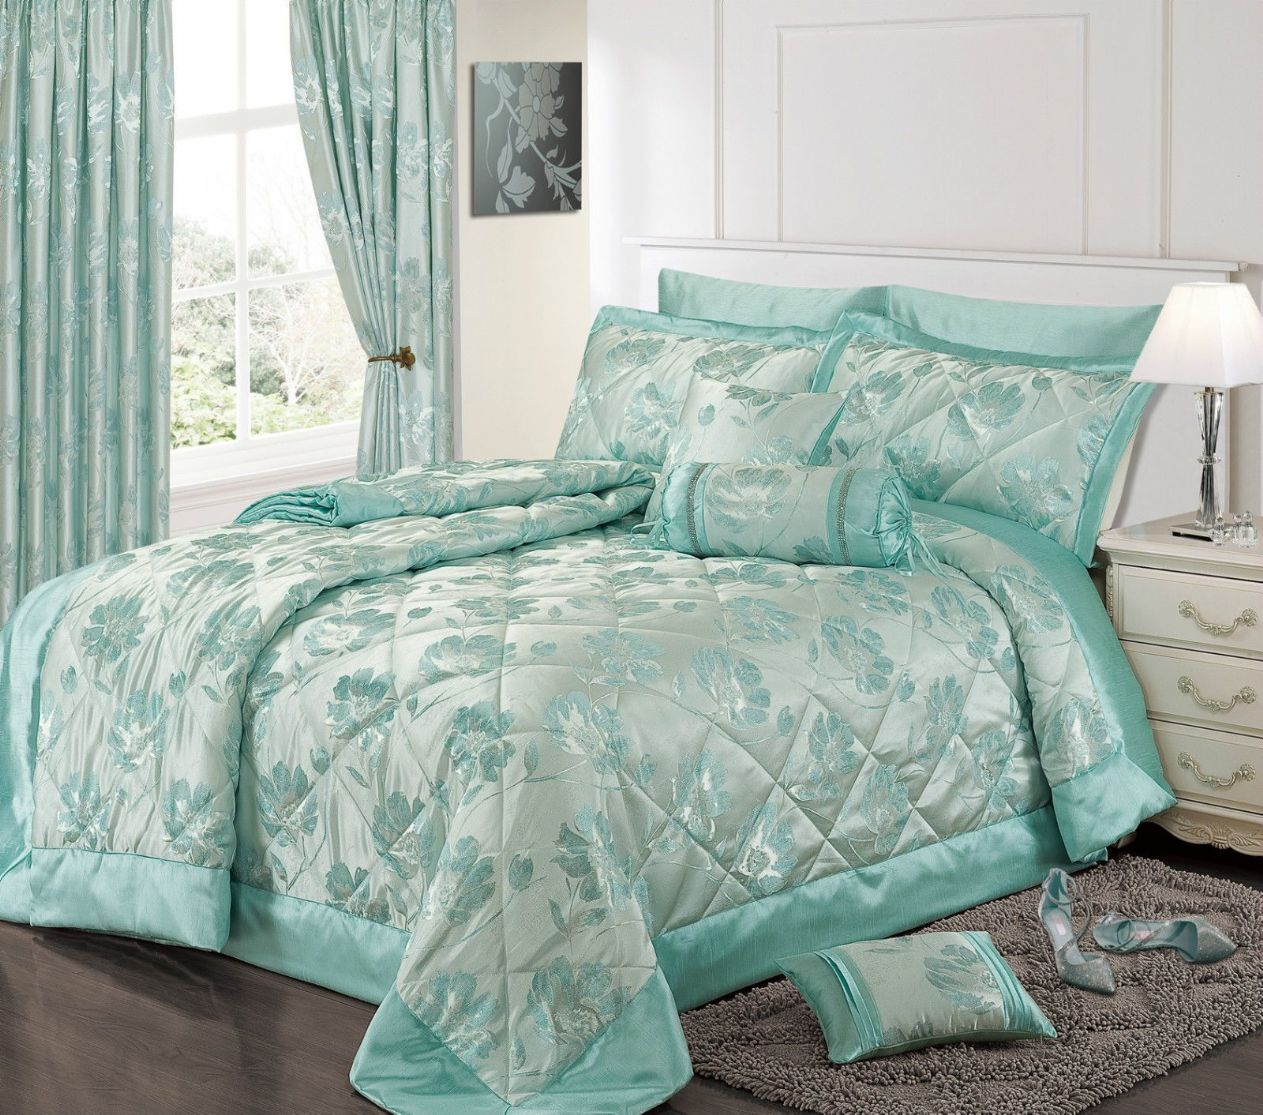 DUCK EGG BLUE COLOUR STYLISH FLORAL JACQUARD LUXURY EMBELLISHED QUILTED BEDSPREAD SET